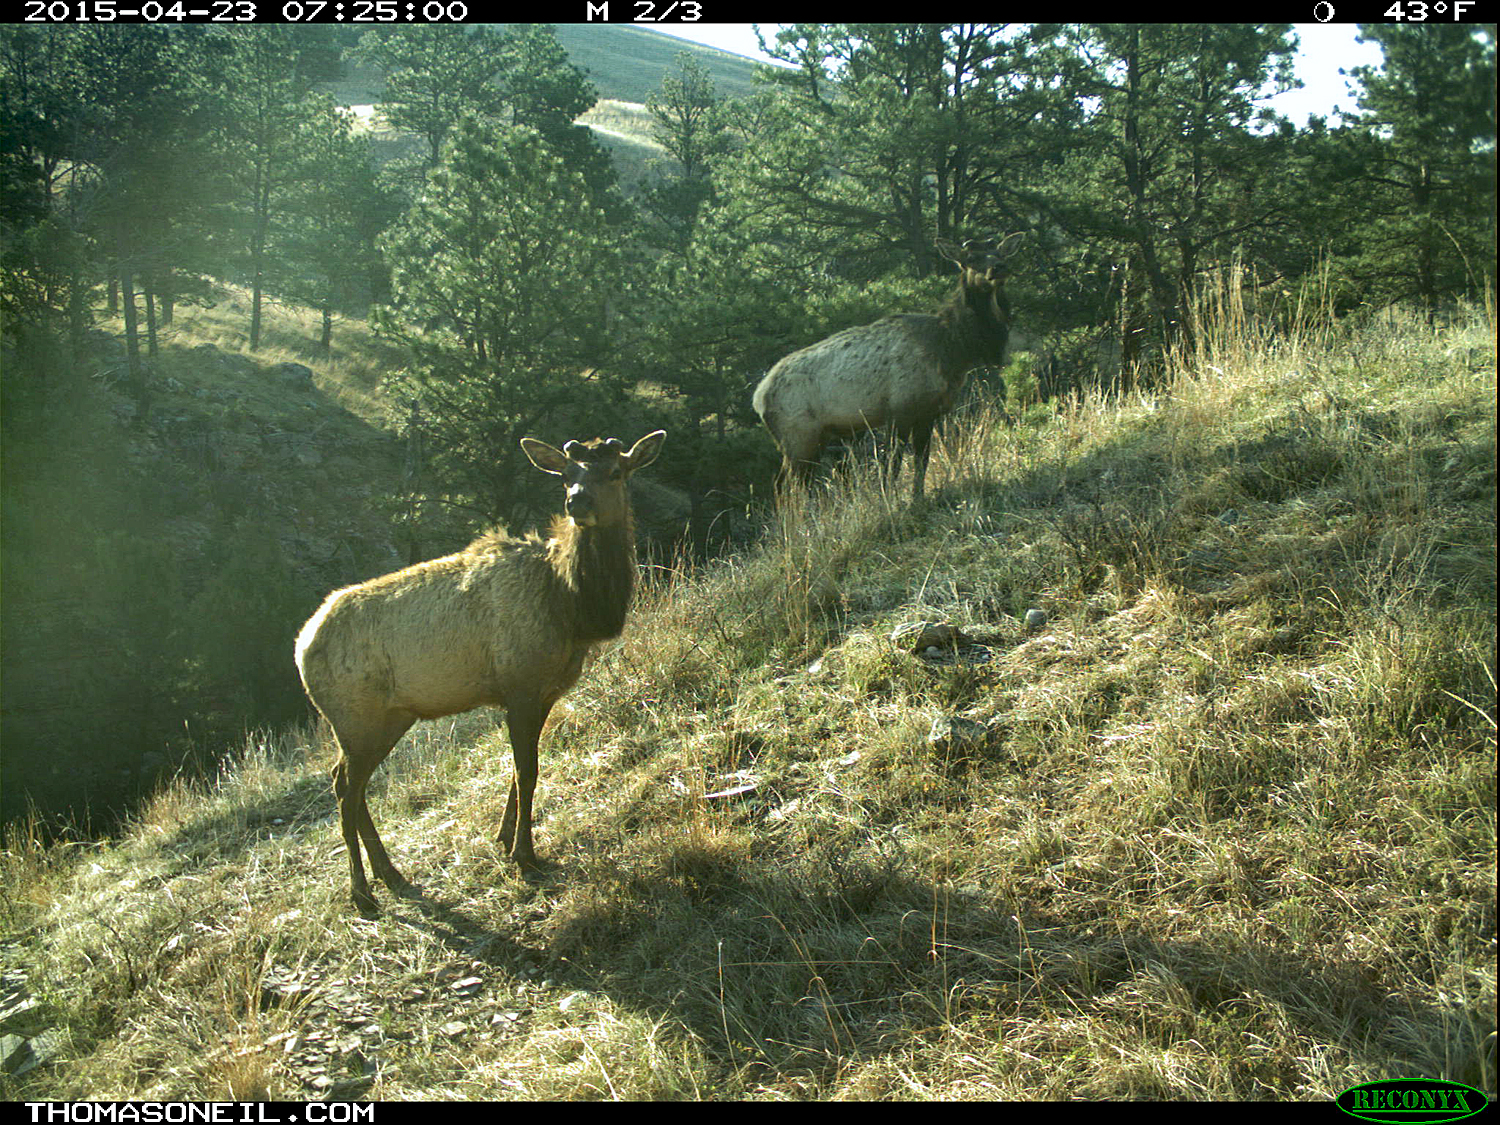 Two elk on trailcam, Wind Cave National Park, April 2015,   Click for next photo.